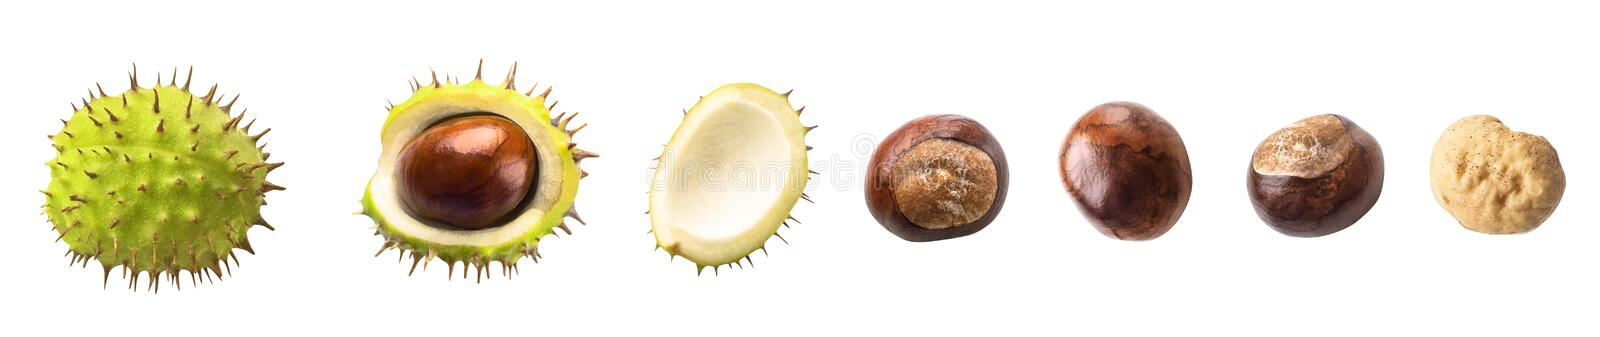 Set of ripe chestnuts isolated on white background. Healthy food royalty free stock photo